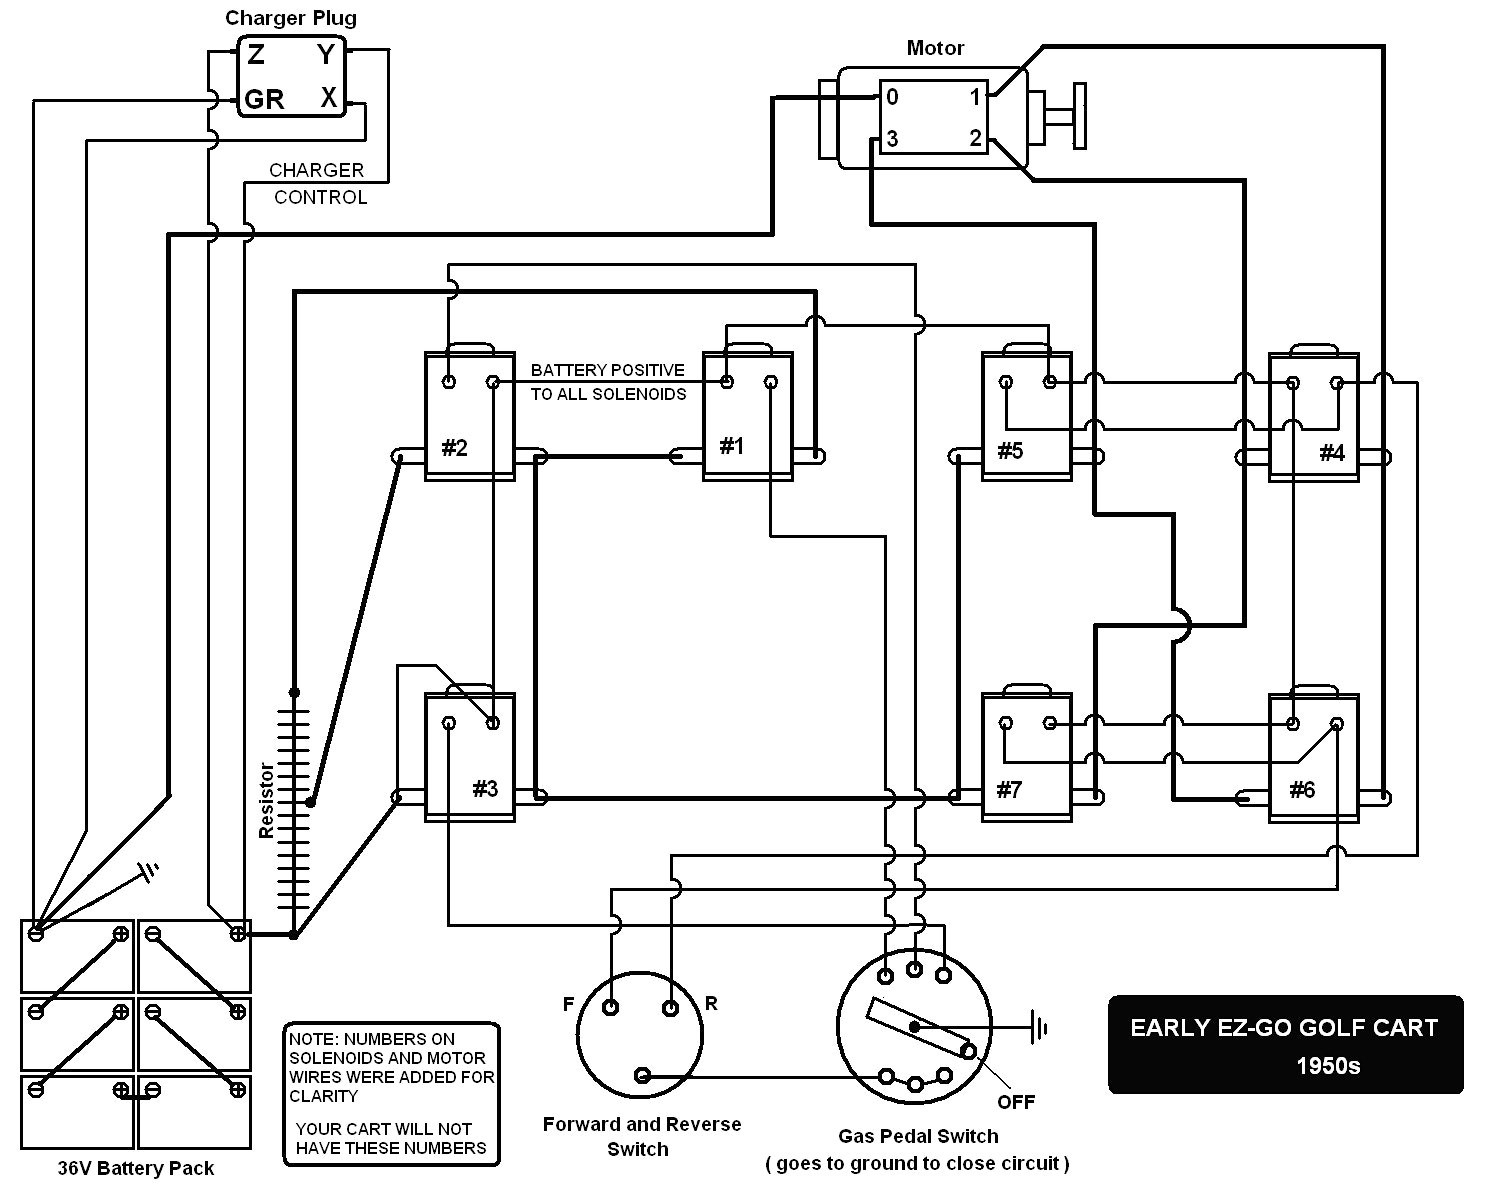 97 ez go wiring diagram